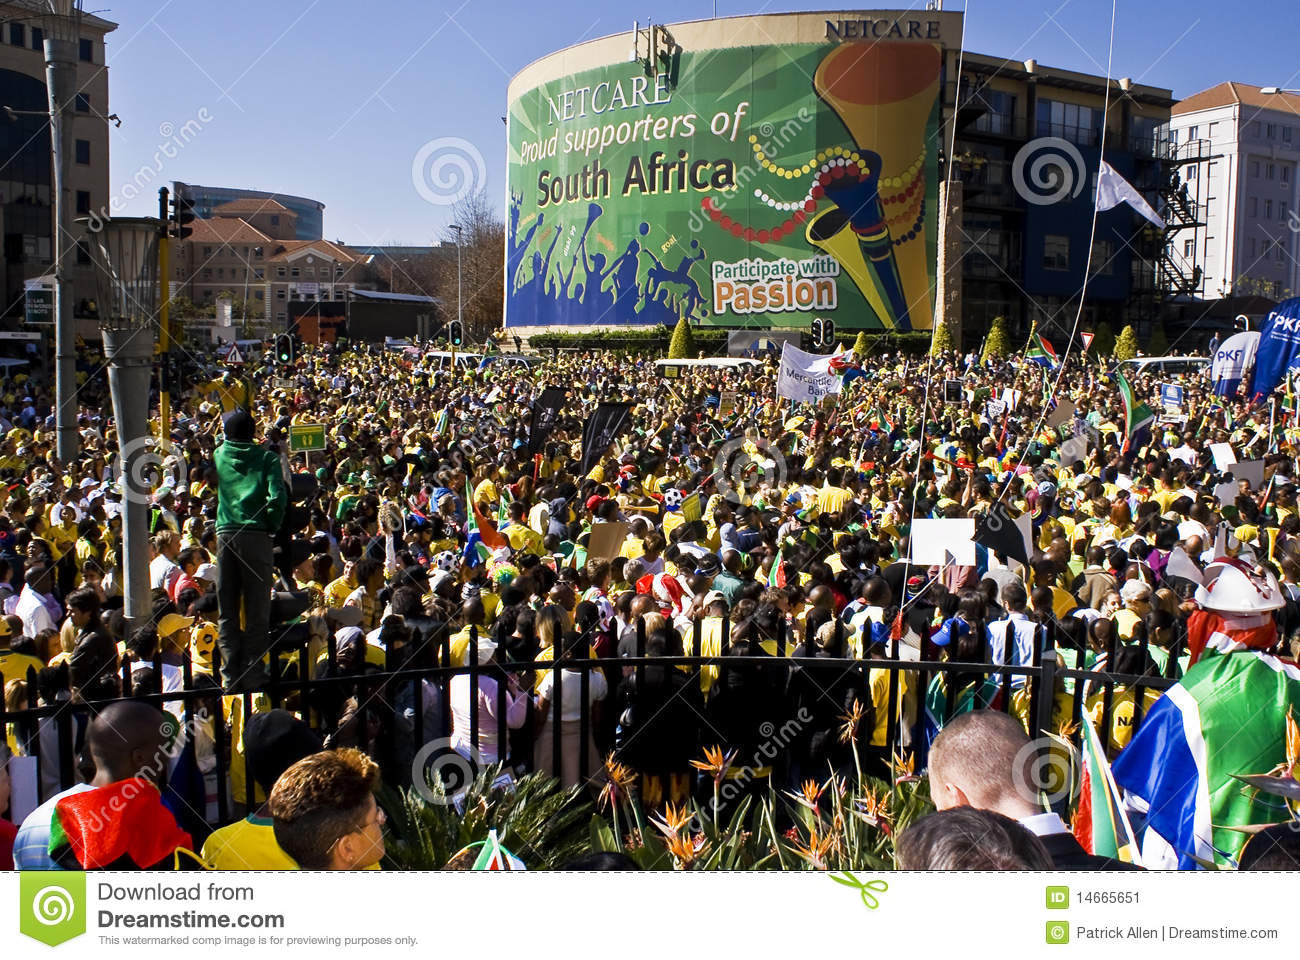 World Cup Soccer Fever Grips Sandton